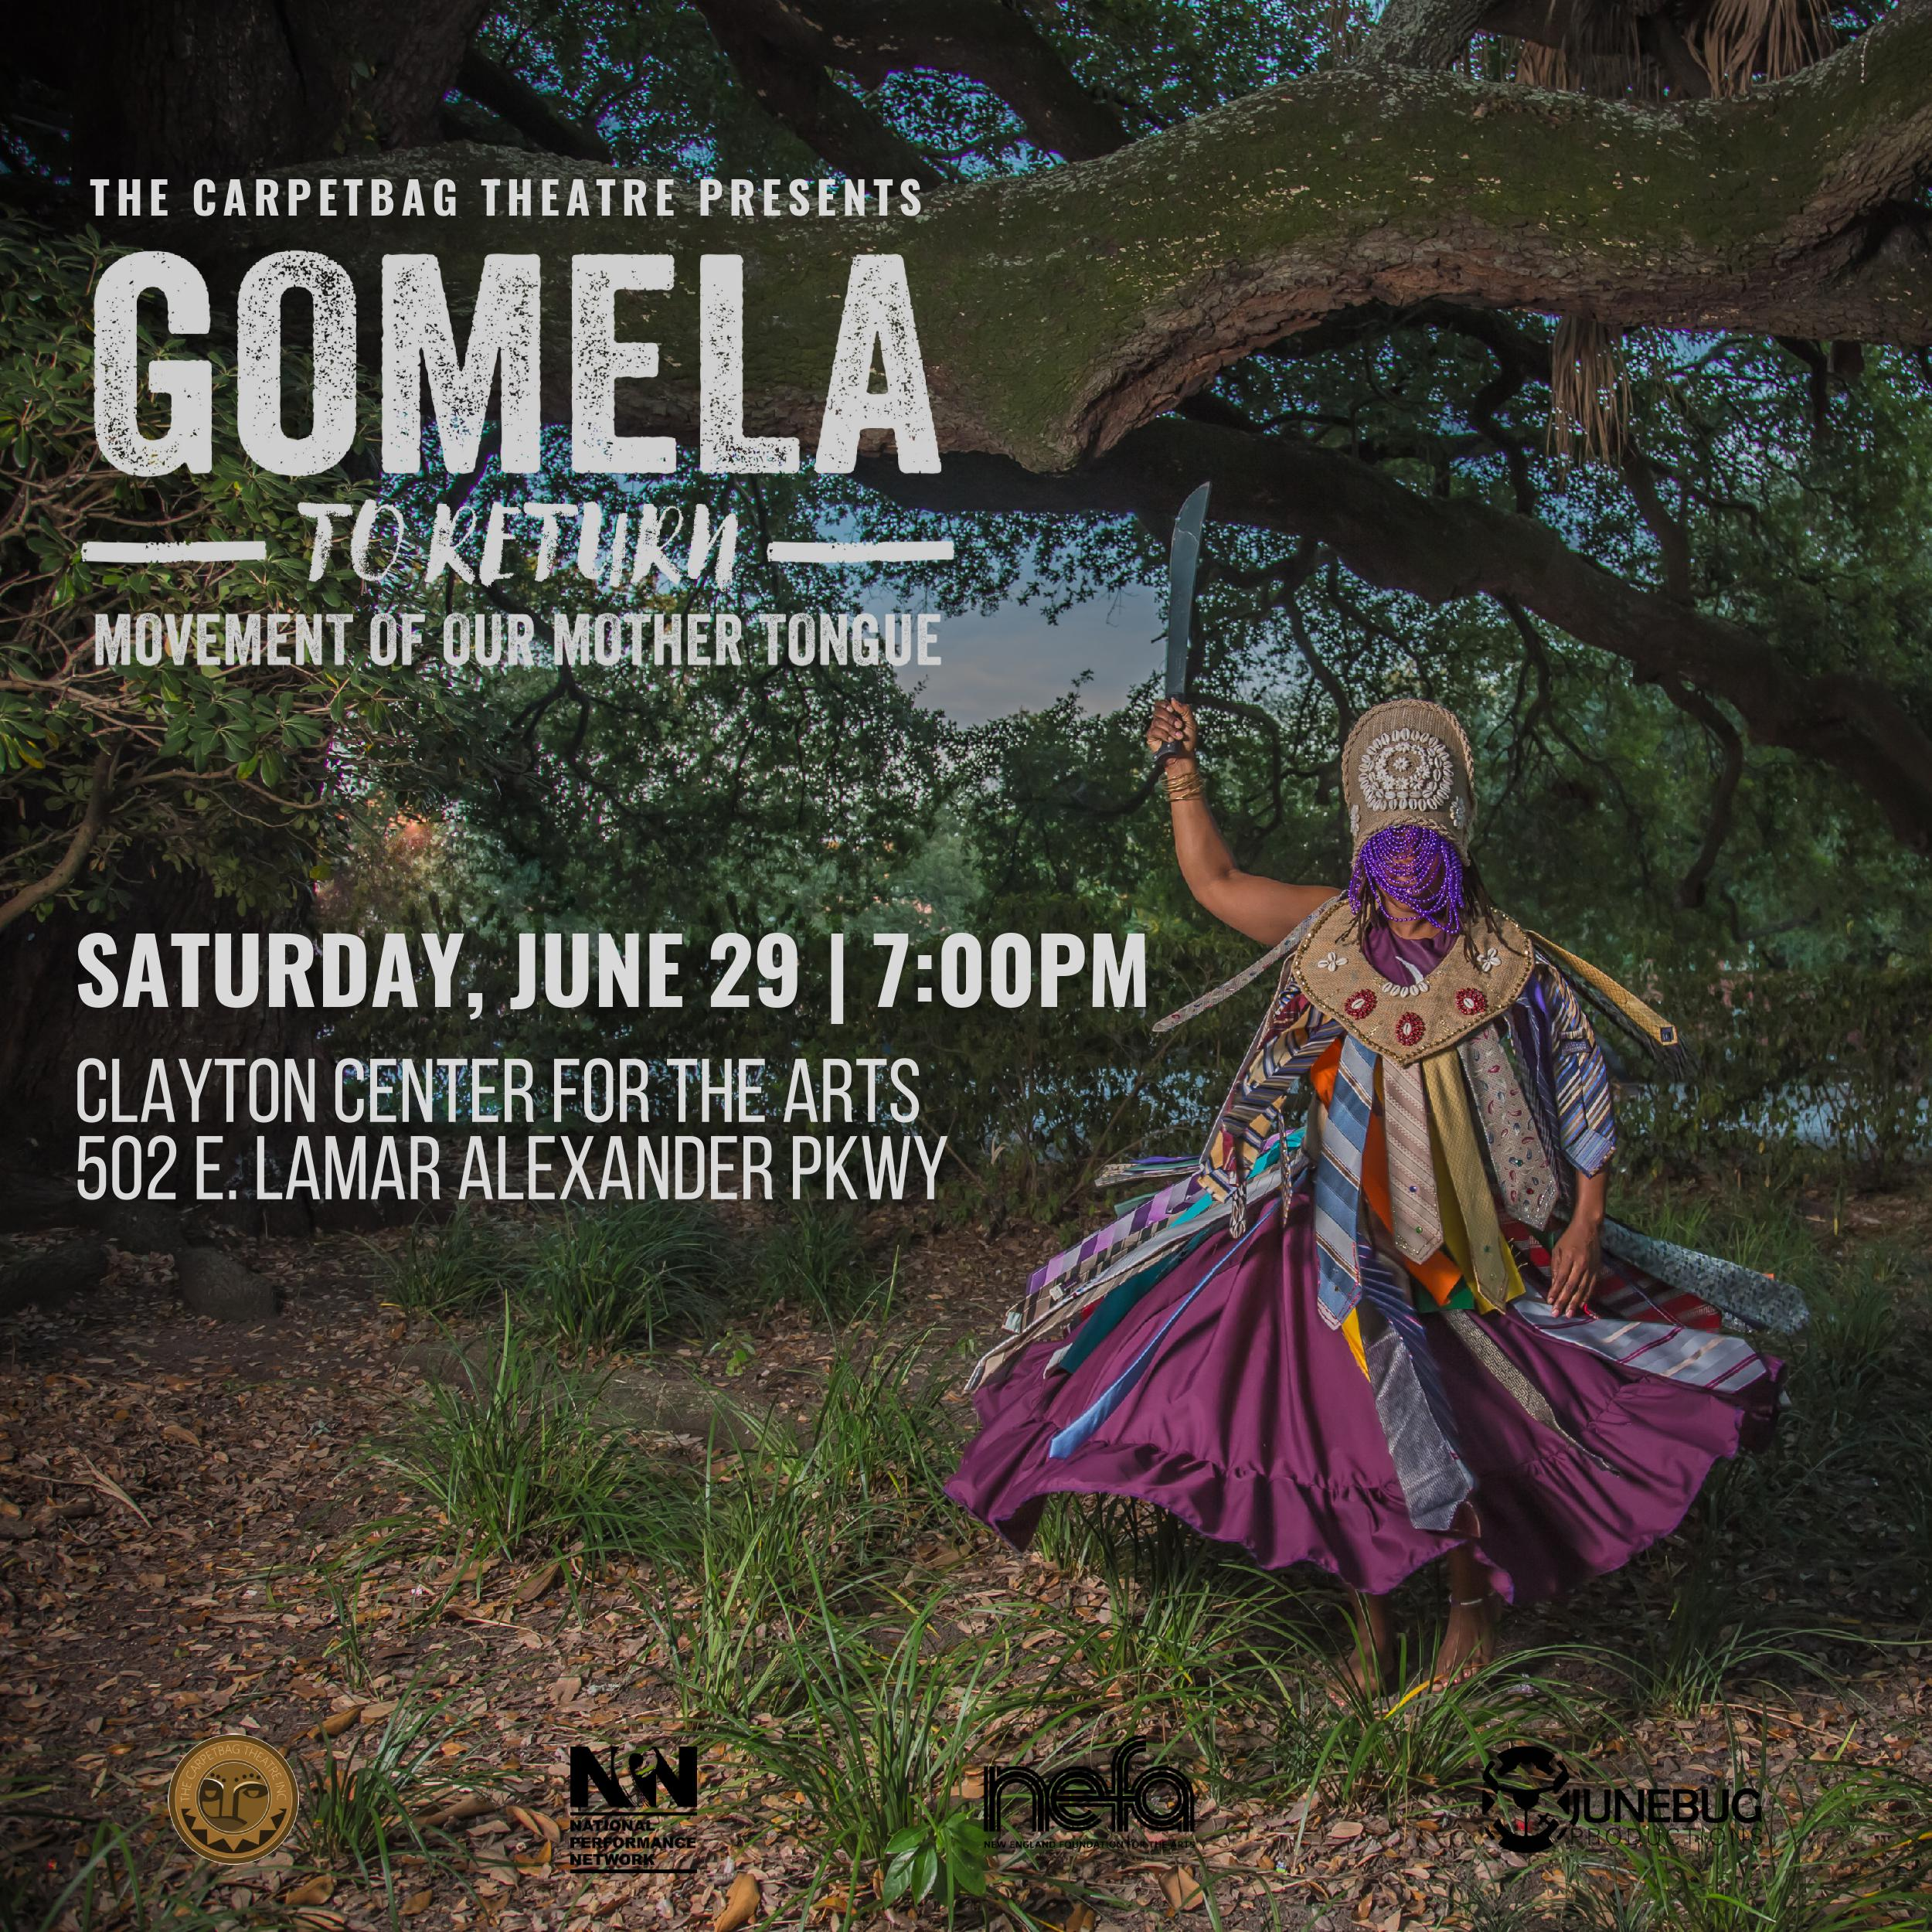 GOMELA/to return: Movement of Our Mother Tongue - June 29th, 7pm Clayton Center for the Arts 502 E. Lamar Alexander Pkwy. Maryville, TN 37804. $10 one price.